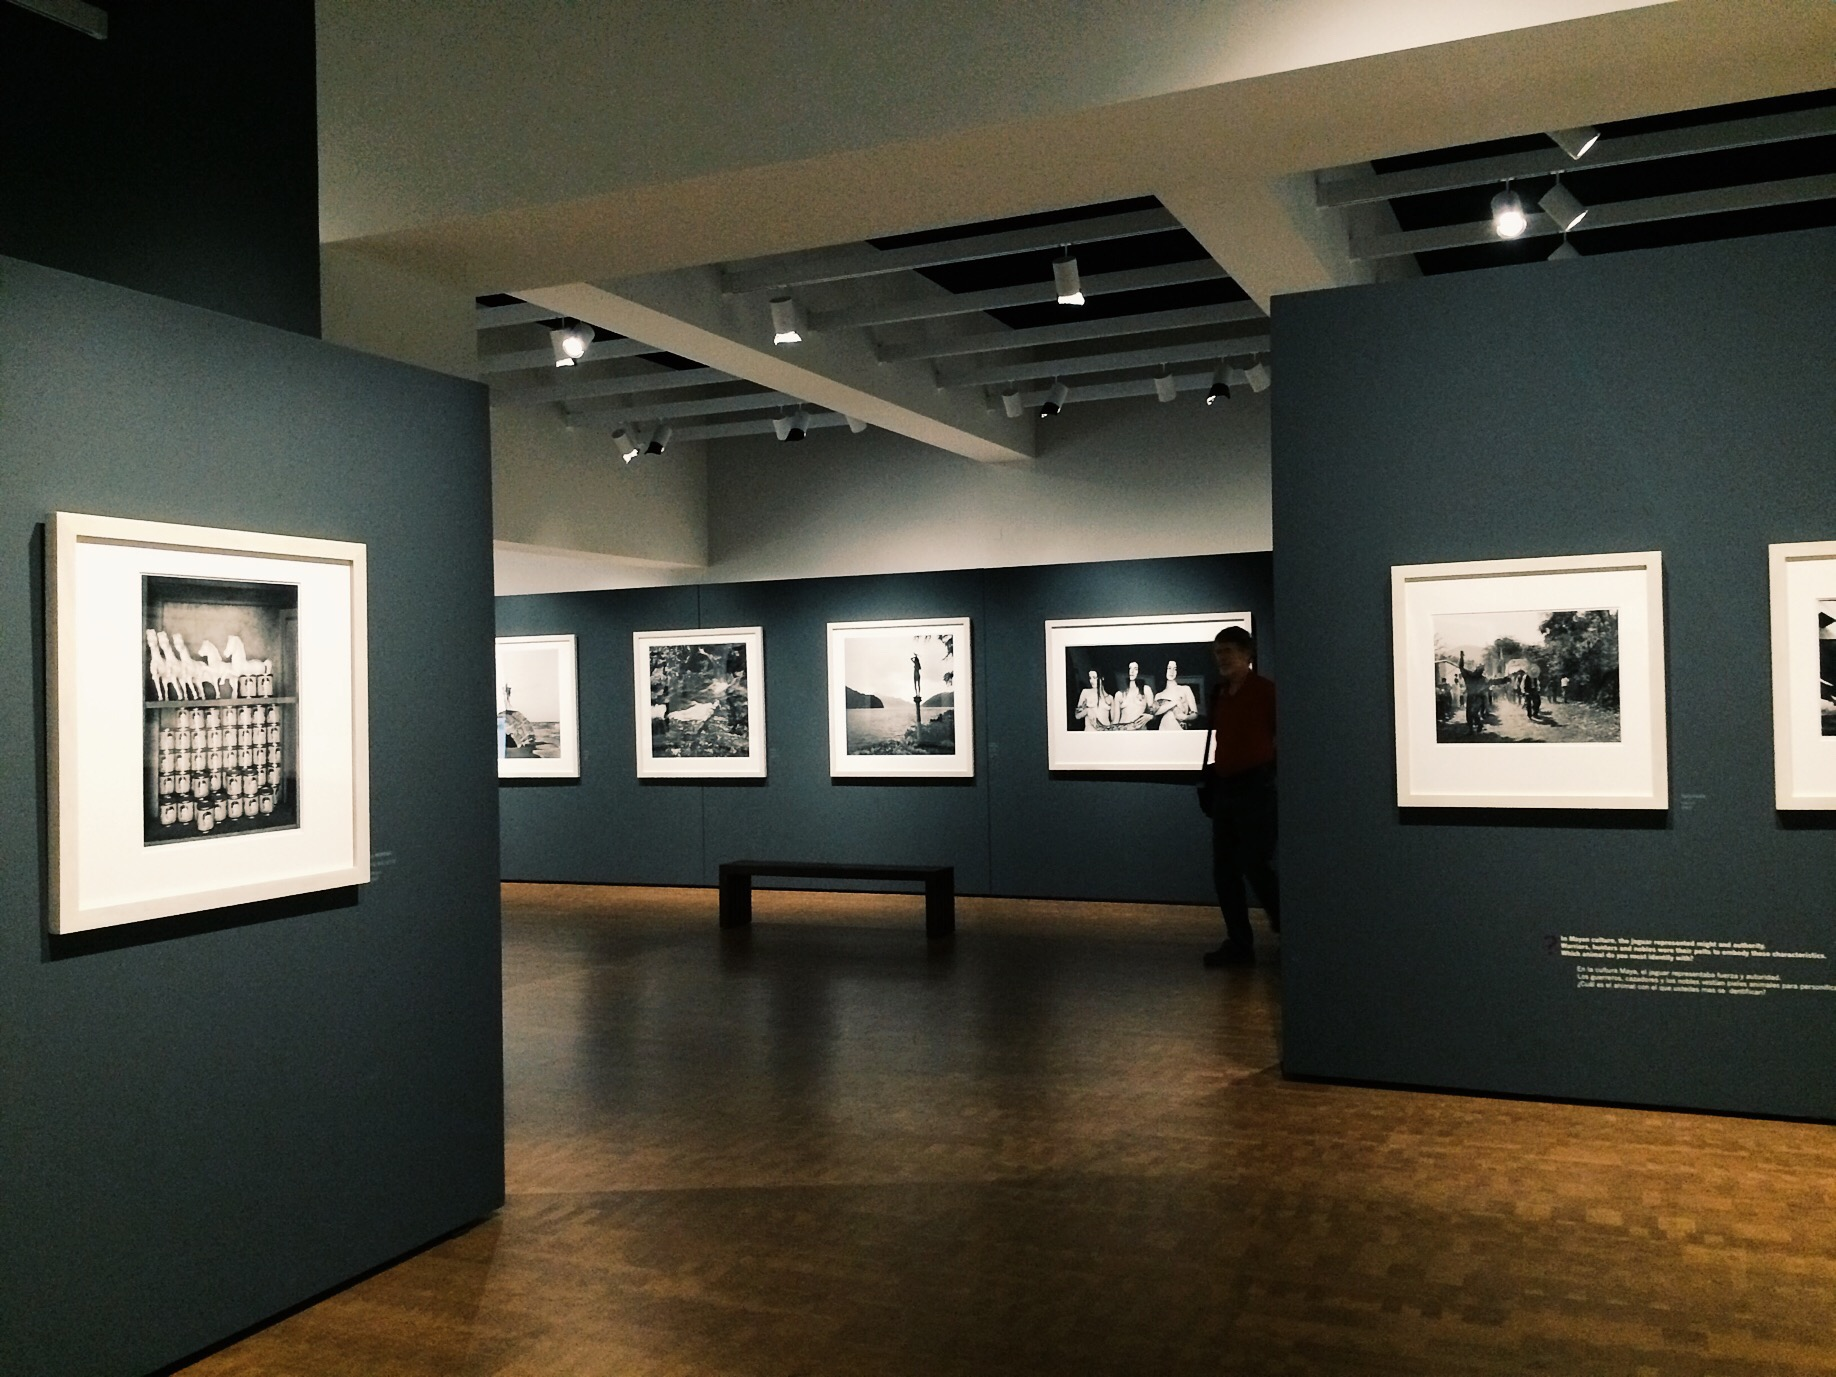 My favorite place to visit, MOPA (Museum of Photographic Arts).